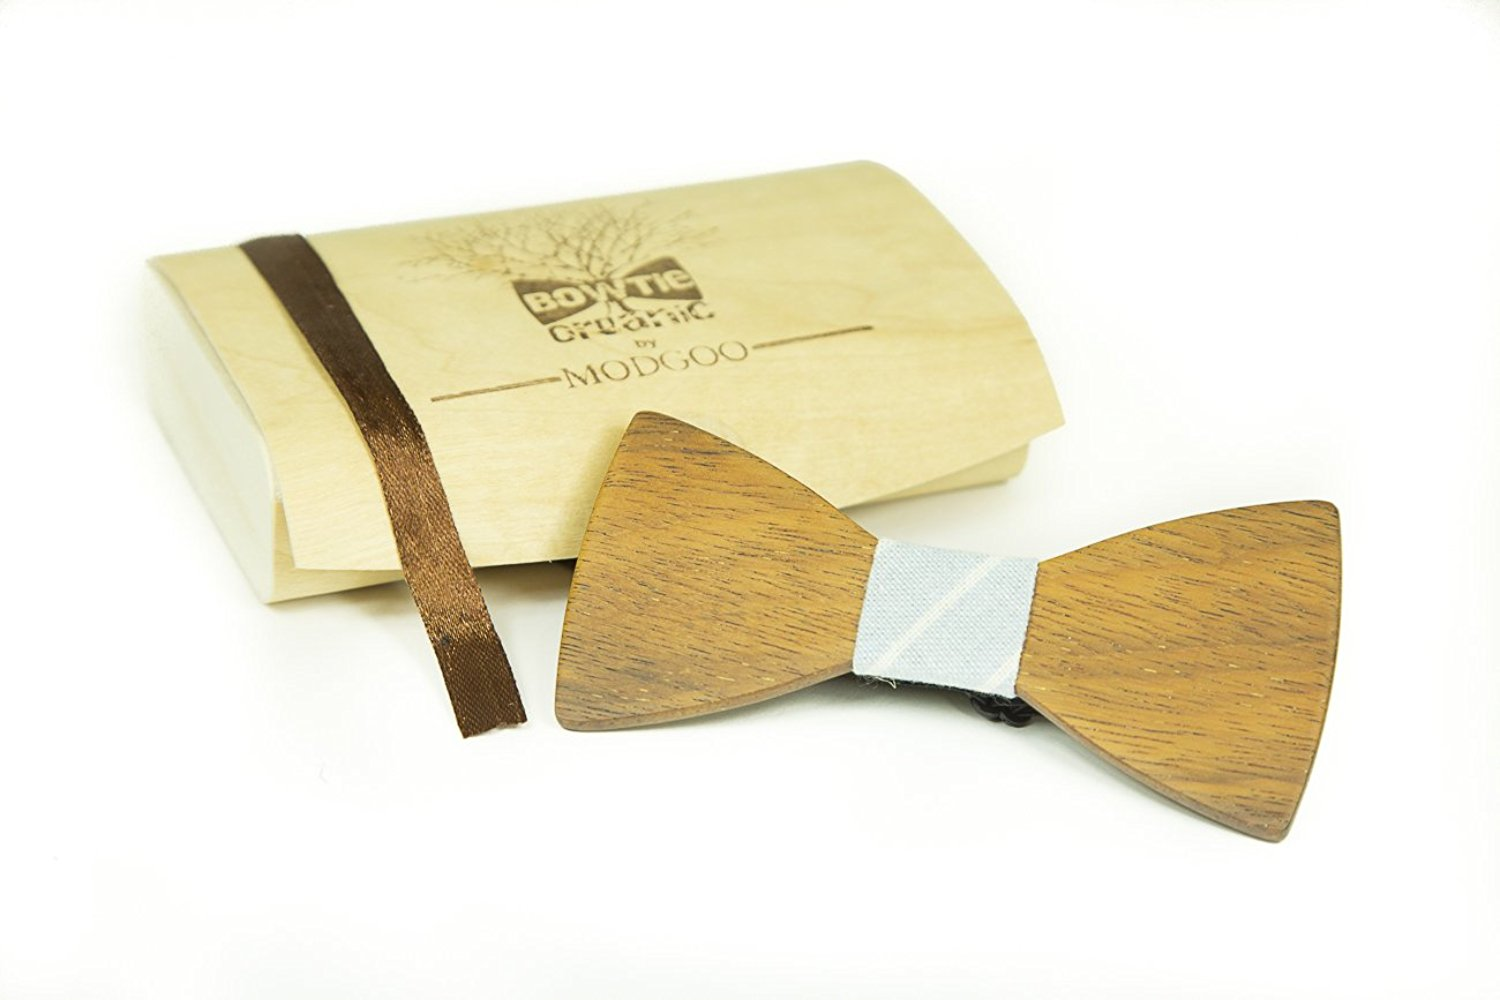 Modgoo Organic Wood Bow Tie James Bond Light Blue